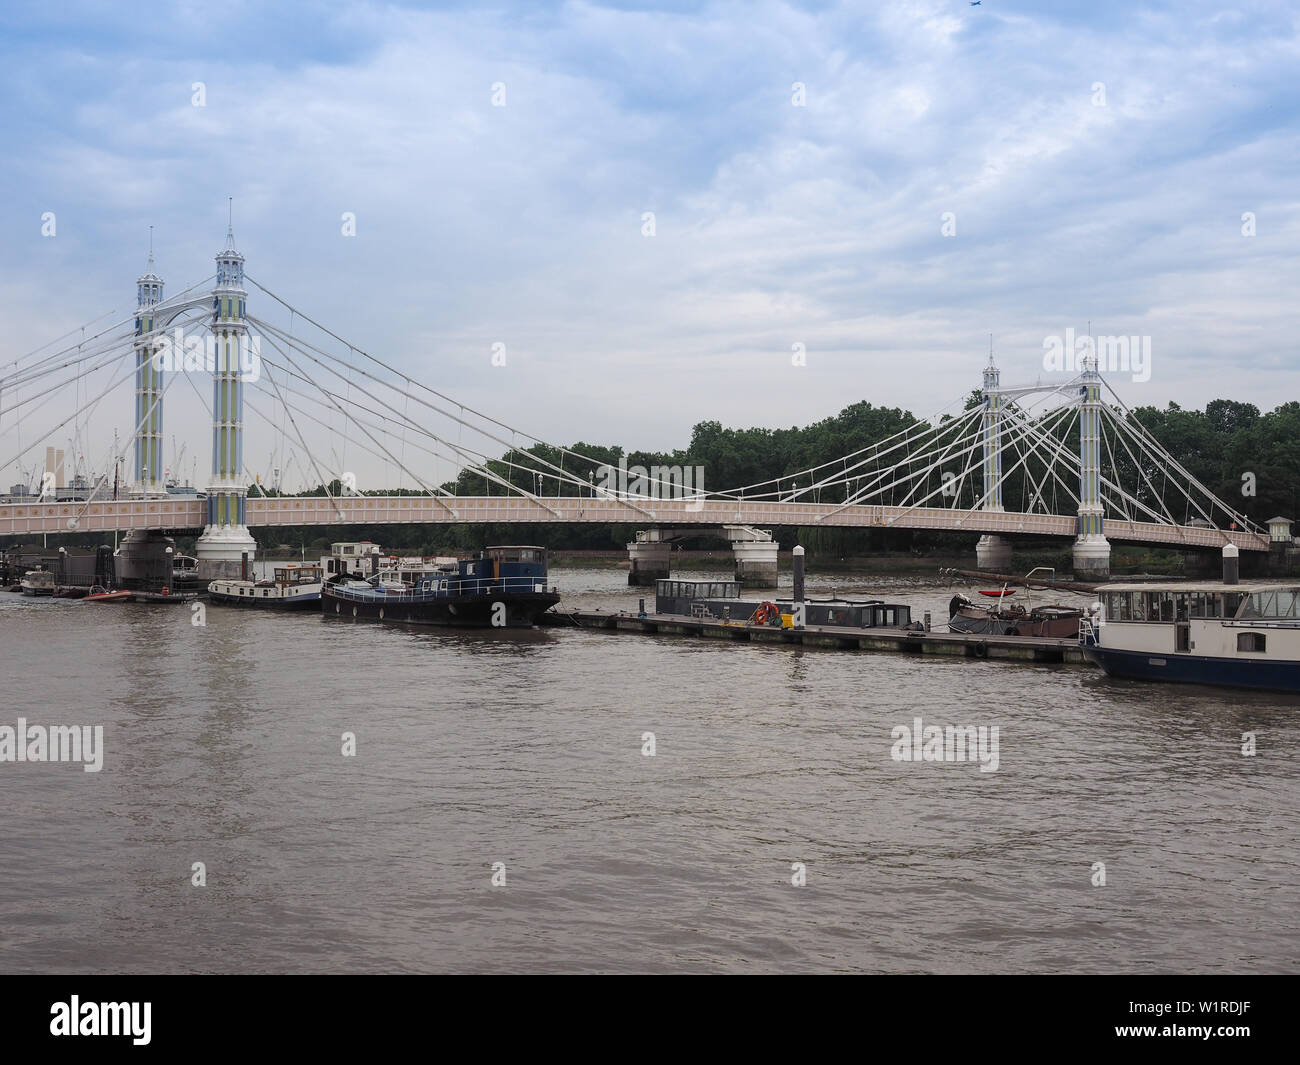 LONDON, UK - CIRCA JUNE 2019: Panoramic view of River Thames in Chelsea with Albert Bridge - Stock Image